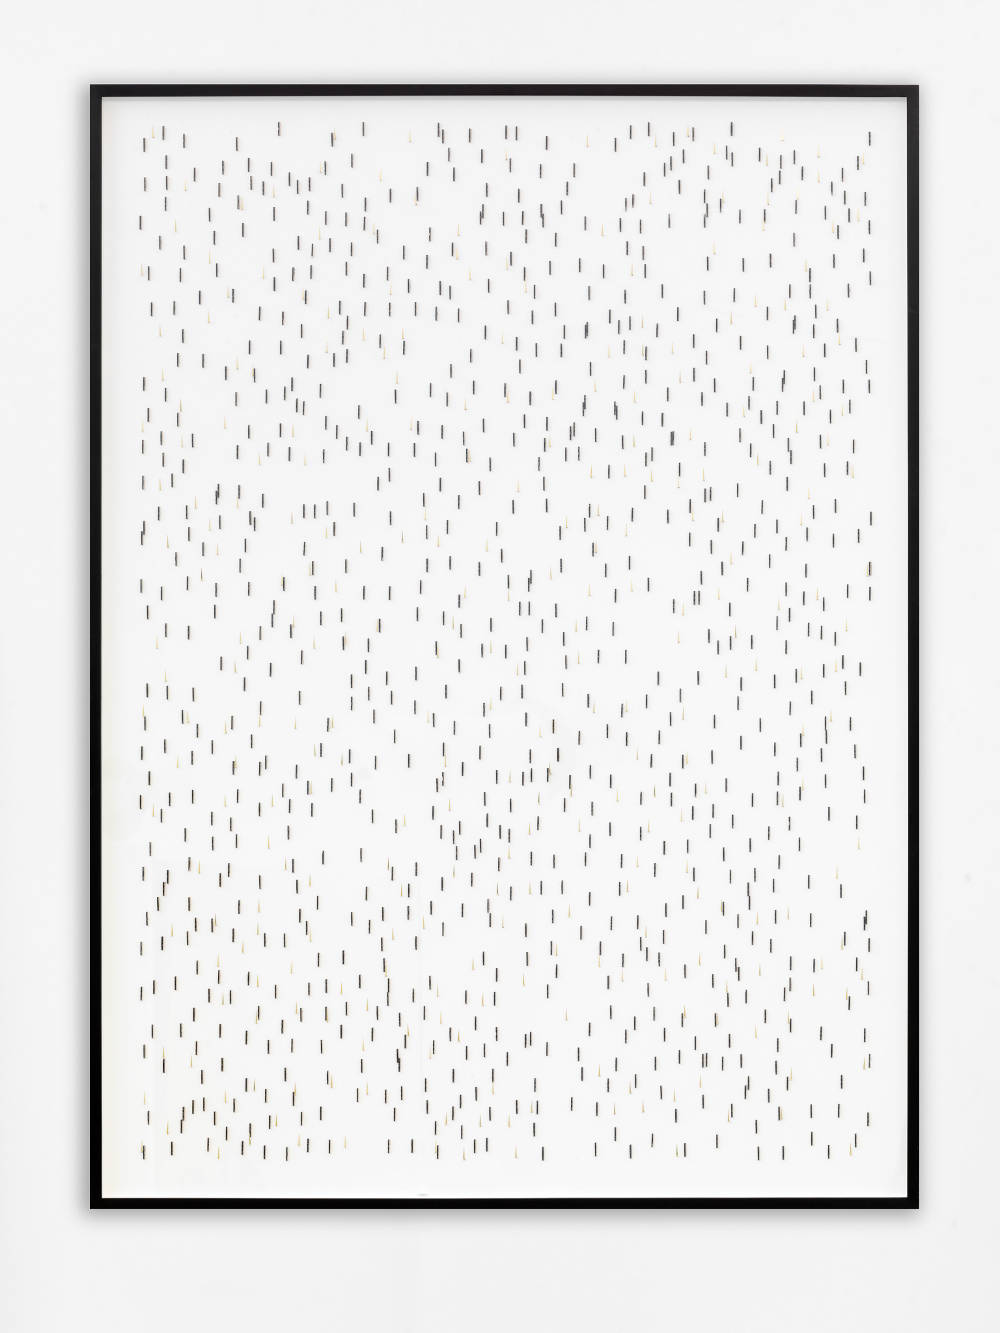 Alicja Kwade, Rain (5 minutes/ 90 cm), 2019. Clock hands and folding ruler on paper 52 1/4 x 38 7/8 x 1 7/8 inches (132.7 x 98.7 x 4.8 cm) framed. Unique